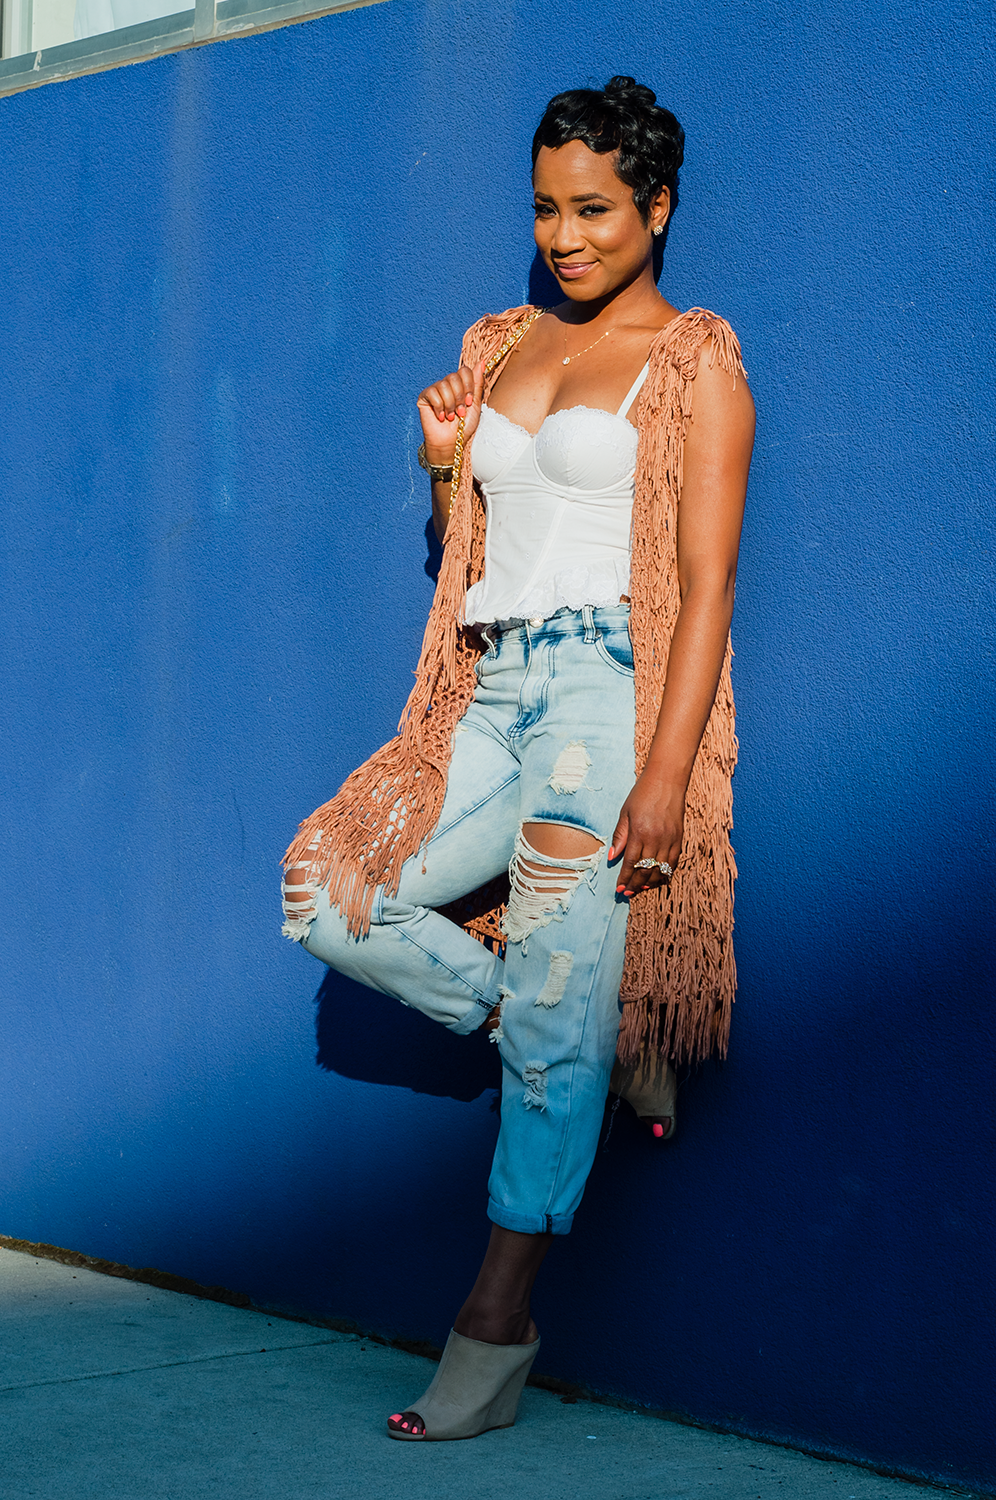 Kori Fields - Kori is the creator of HSGS. She attended Cass Technical High School. She is a renaissance woman who does make-up, set-building and fashion blogging. It is her passion to cultivate a positive self-image in young women that brought this organization to life!